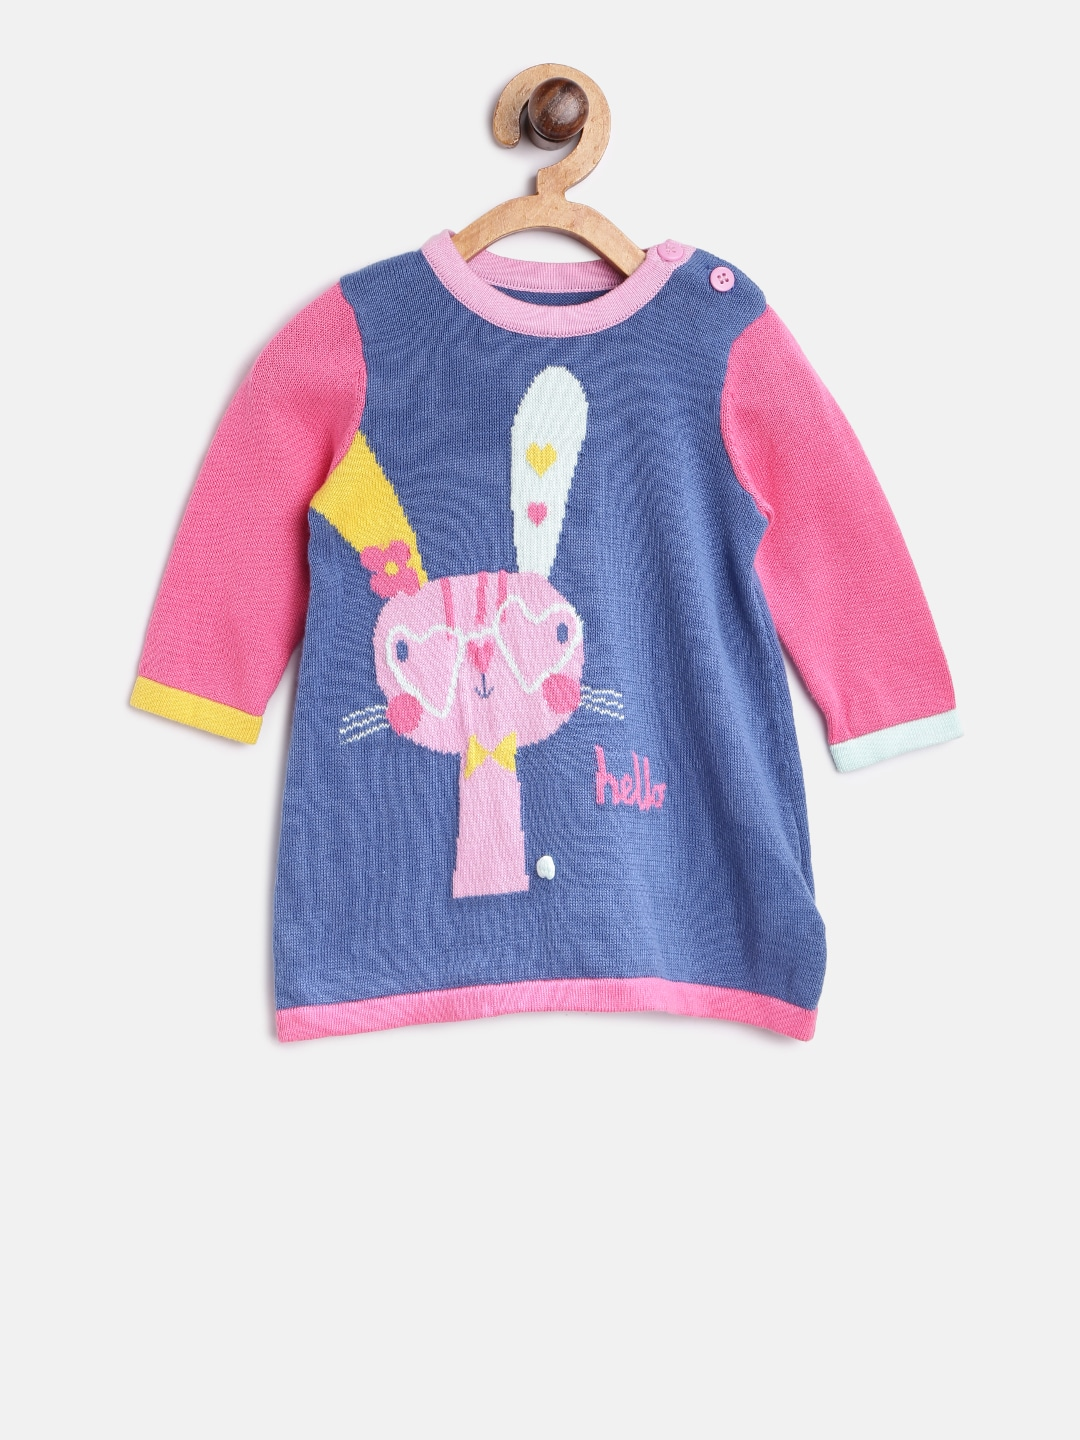 ea0d954a4 Mothercare - Buy Kids Clothing Online in India from Mothercare